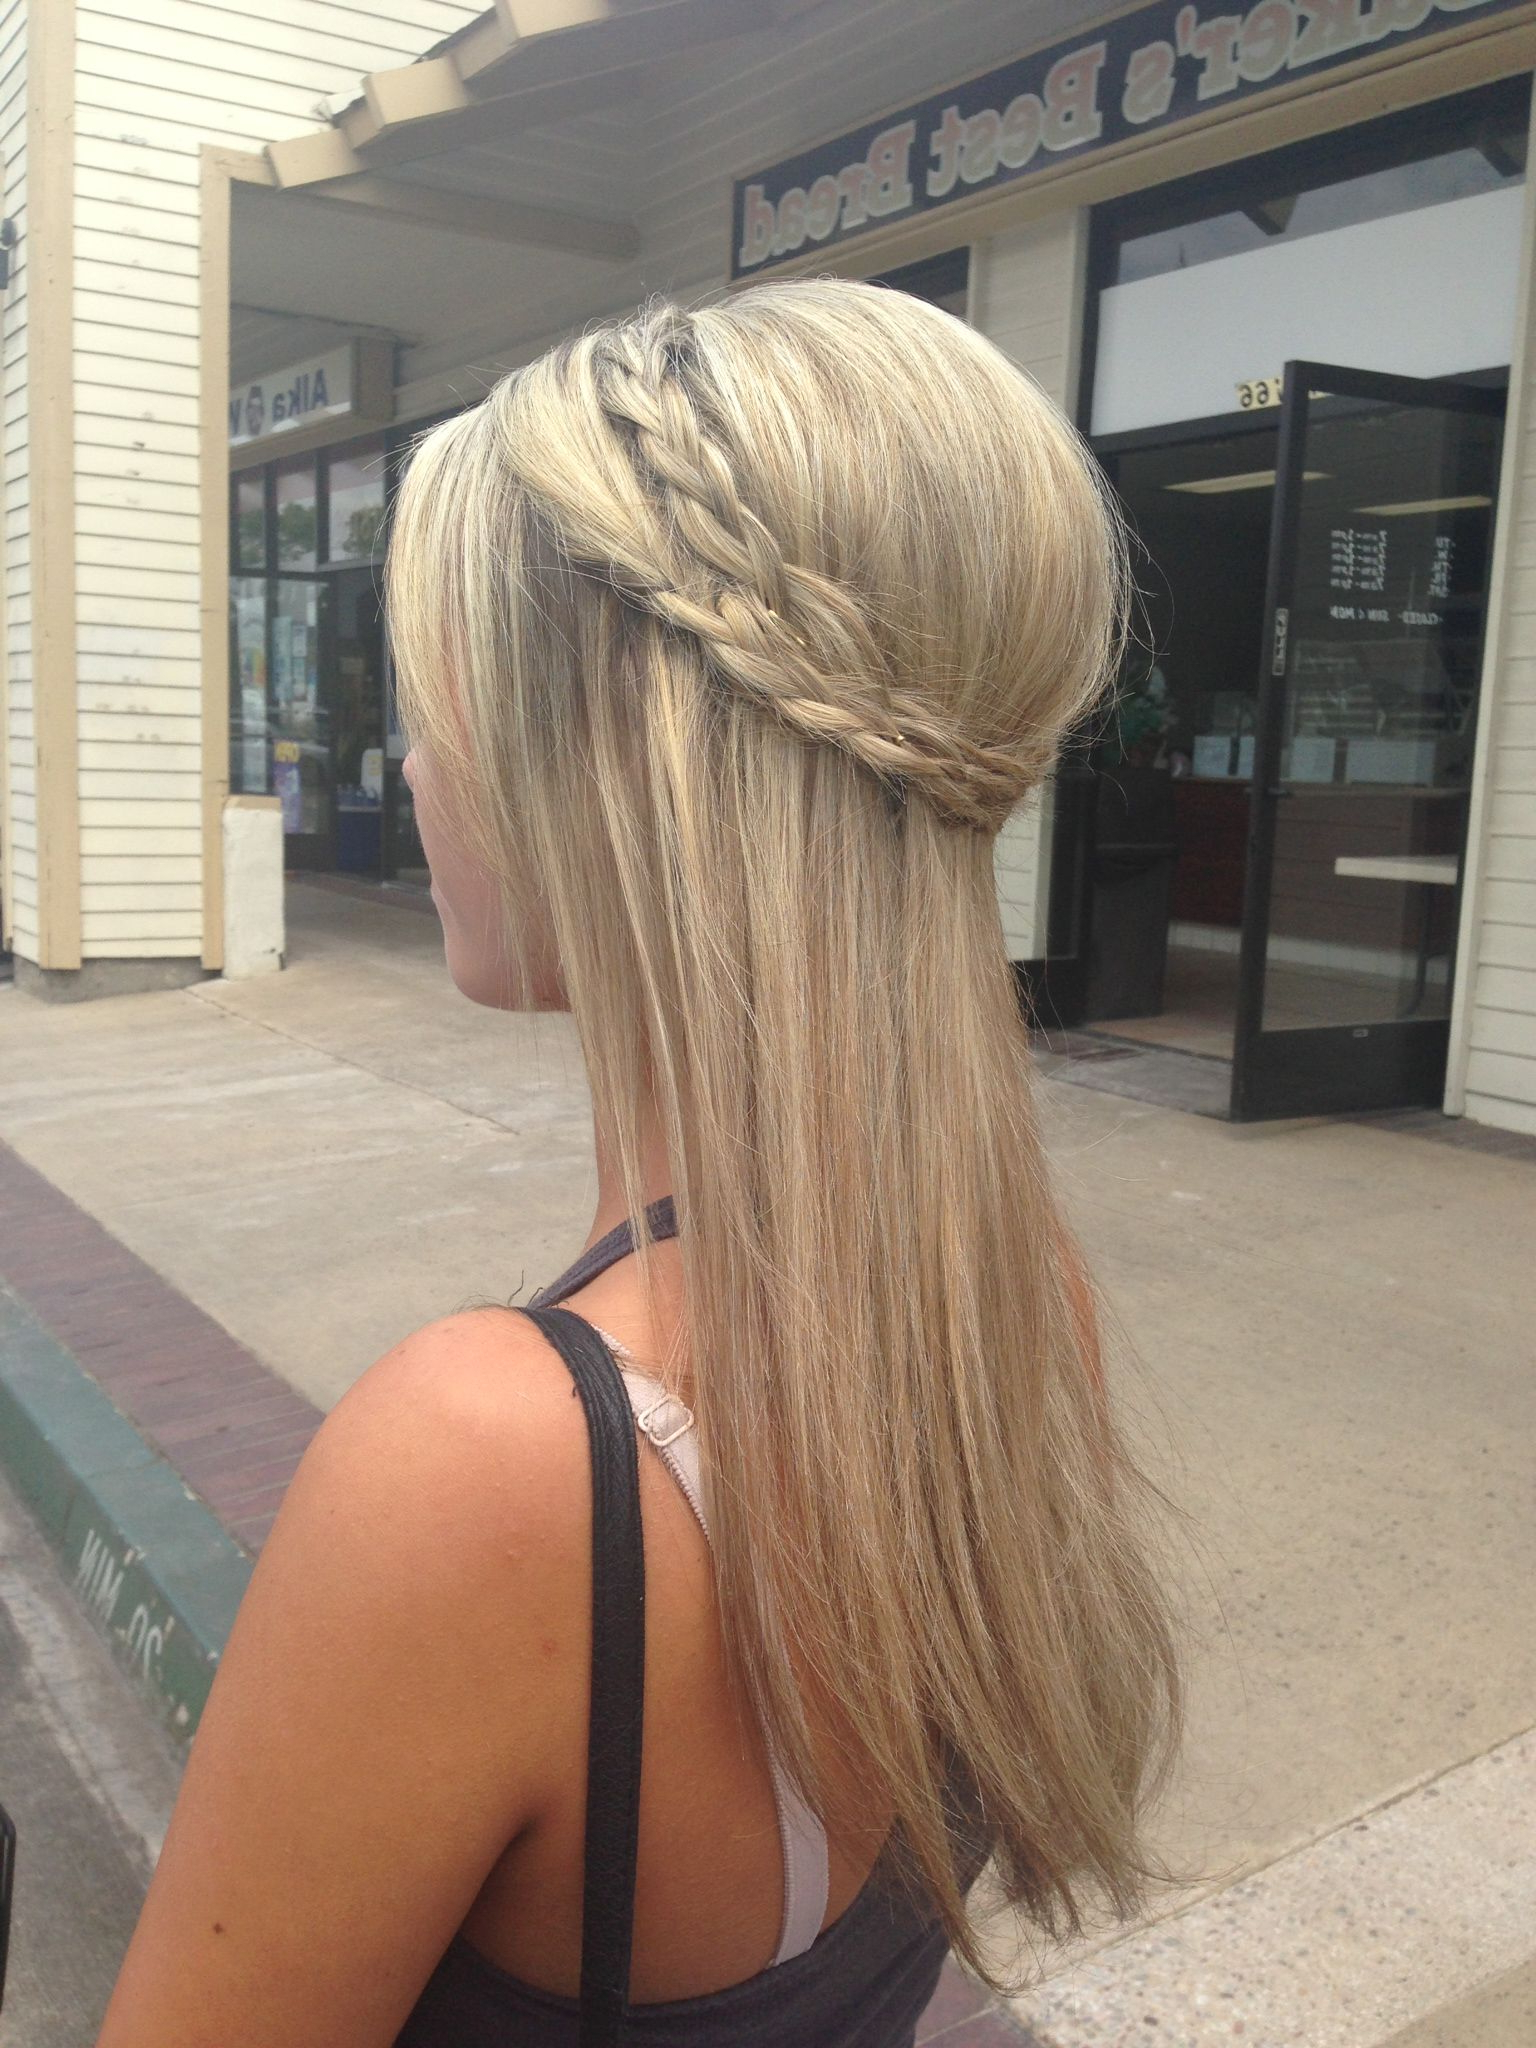 20 Trendy Short Hairstyles: Spring And Summer Haircut | Hair Throughout Teased Short Hairstyles (View 2 of 25)